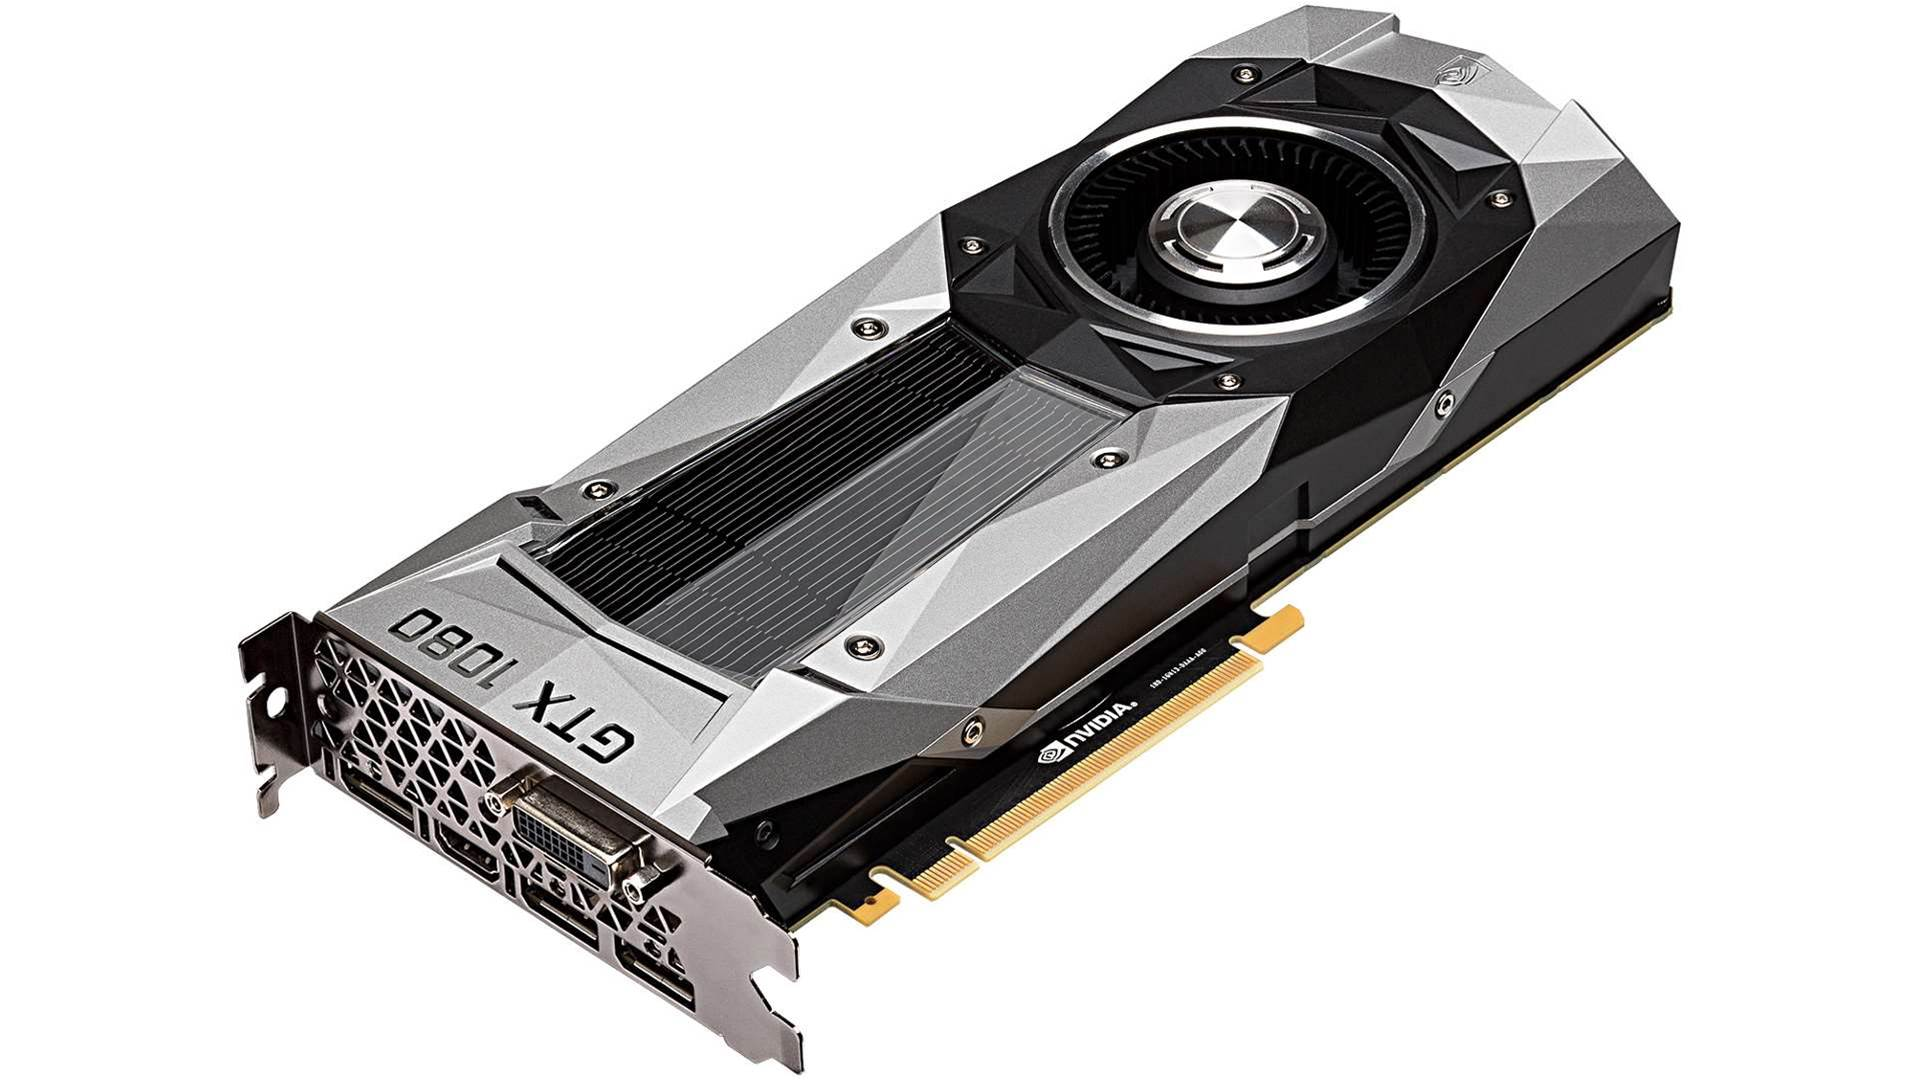 GTX 1080 fan issues to be fixed in next driver update